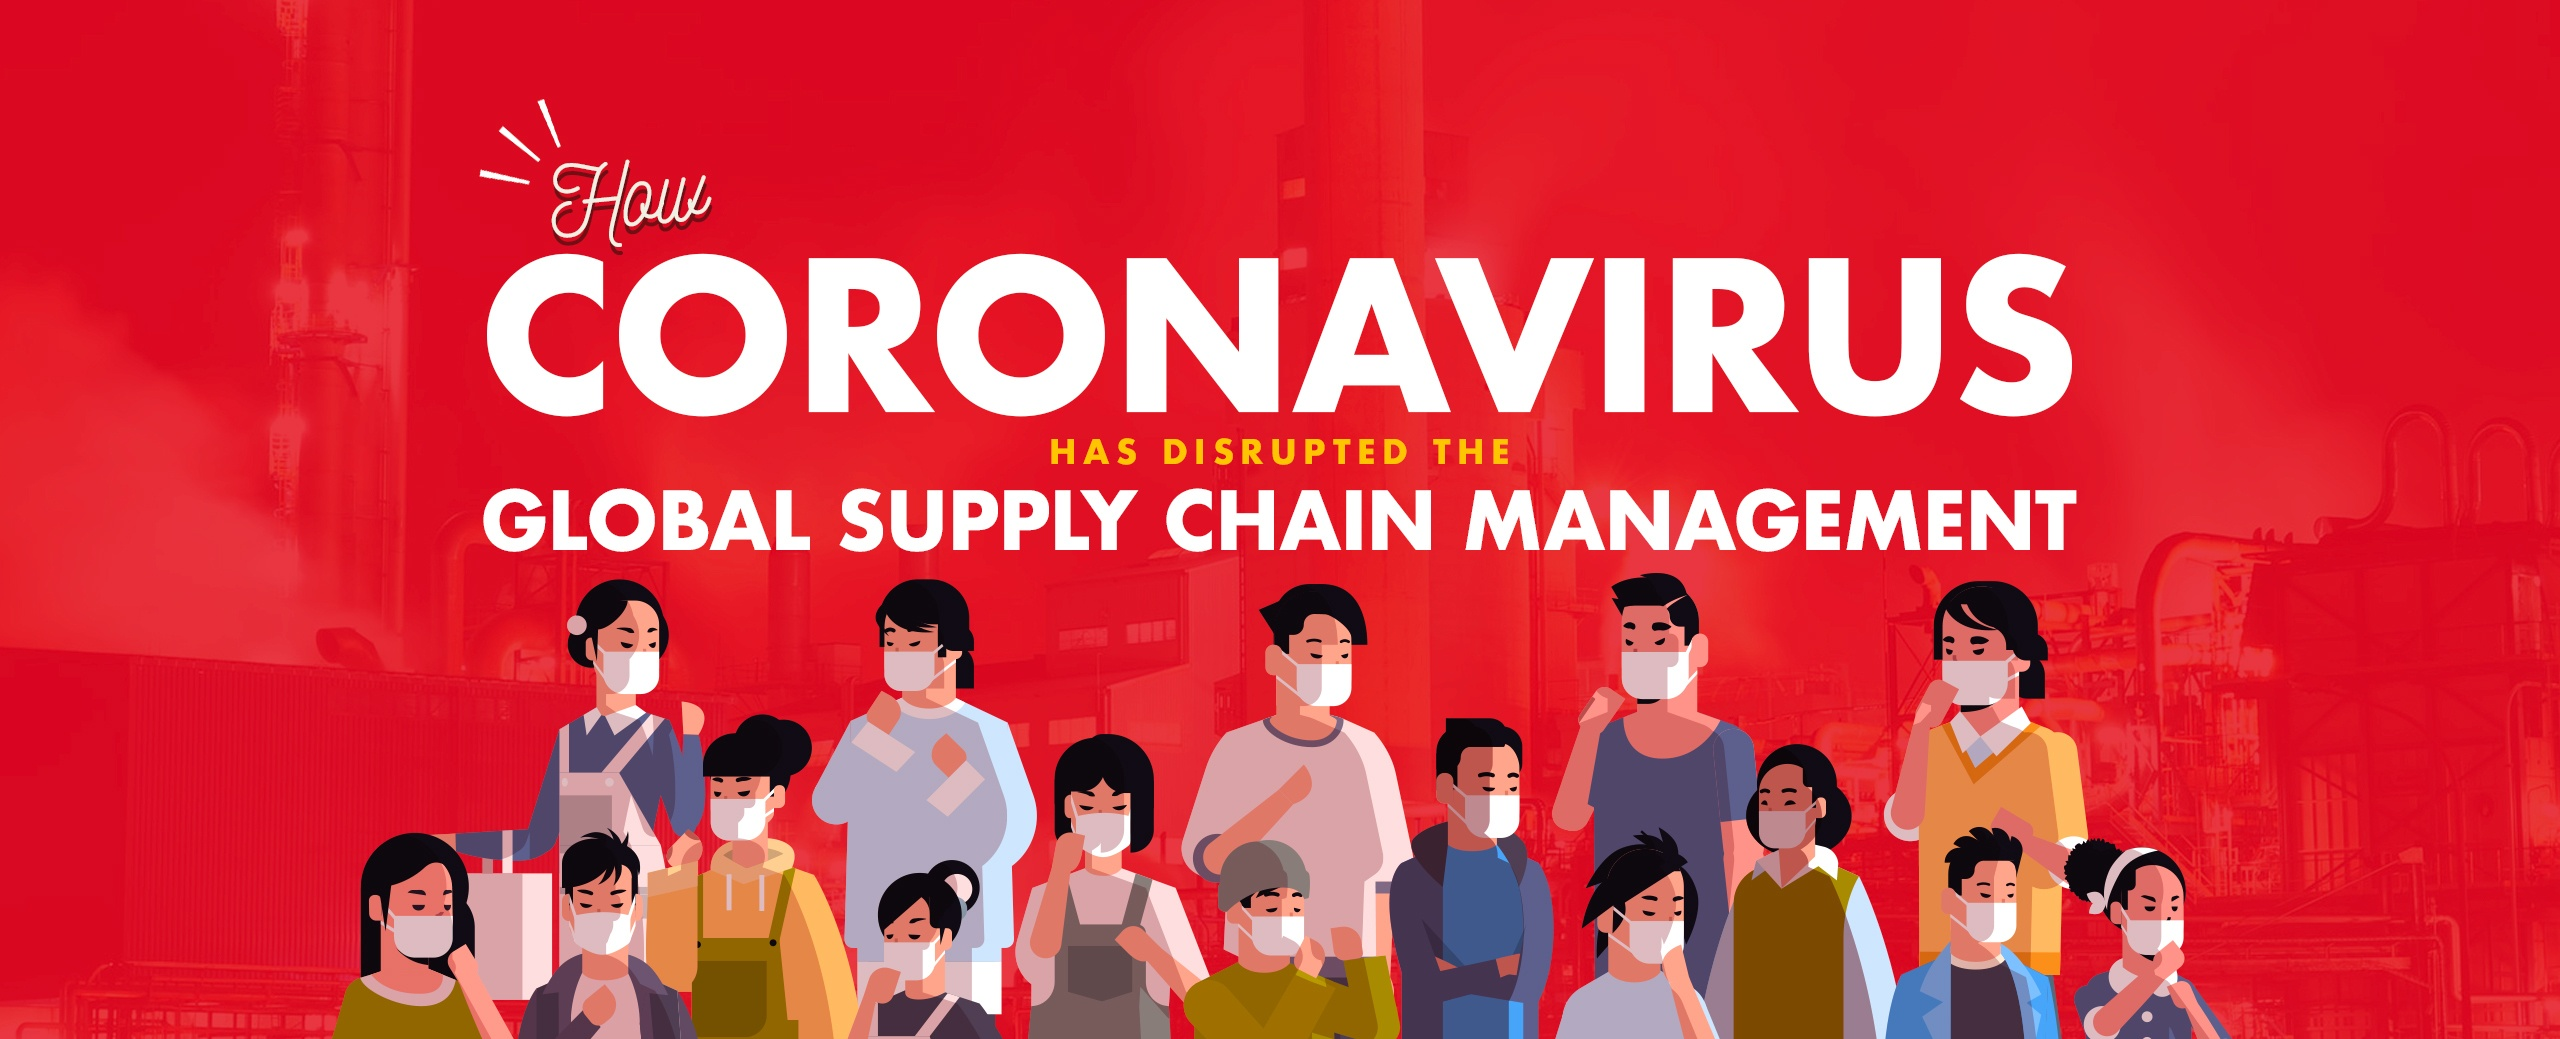 How-Coronavirus-Has-Disrupted-the-Global-Supply-Chain-Management